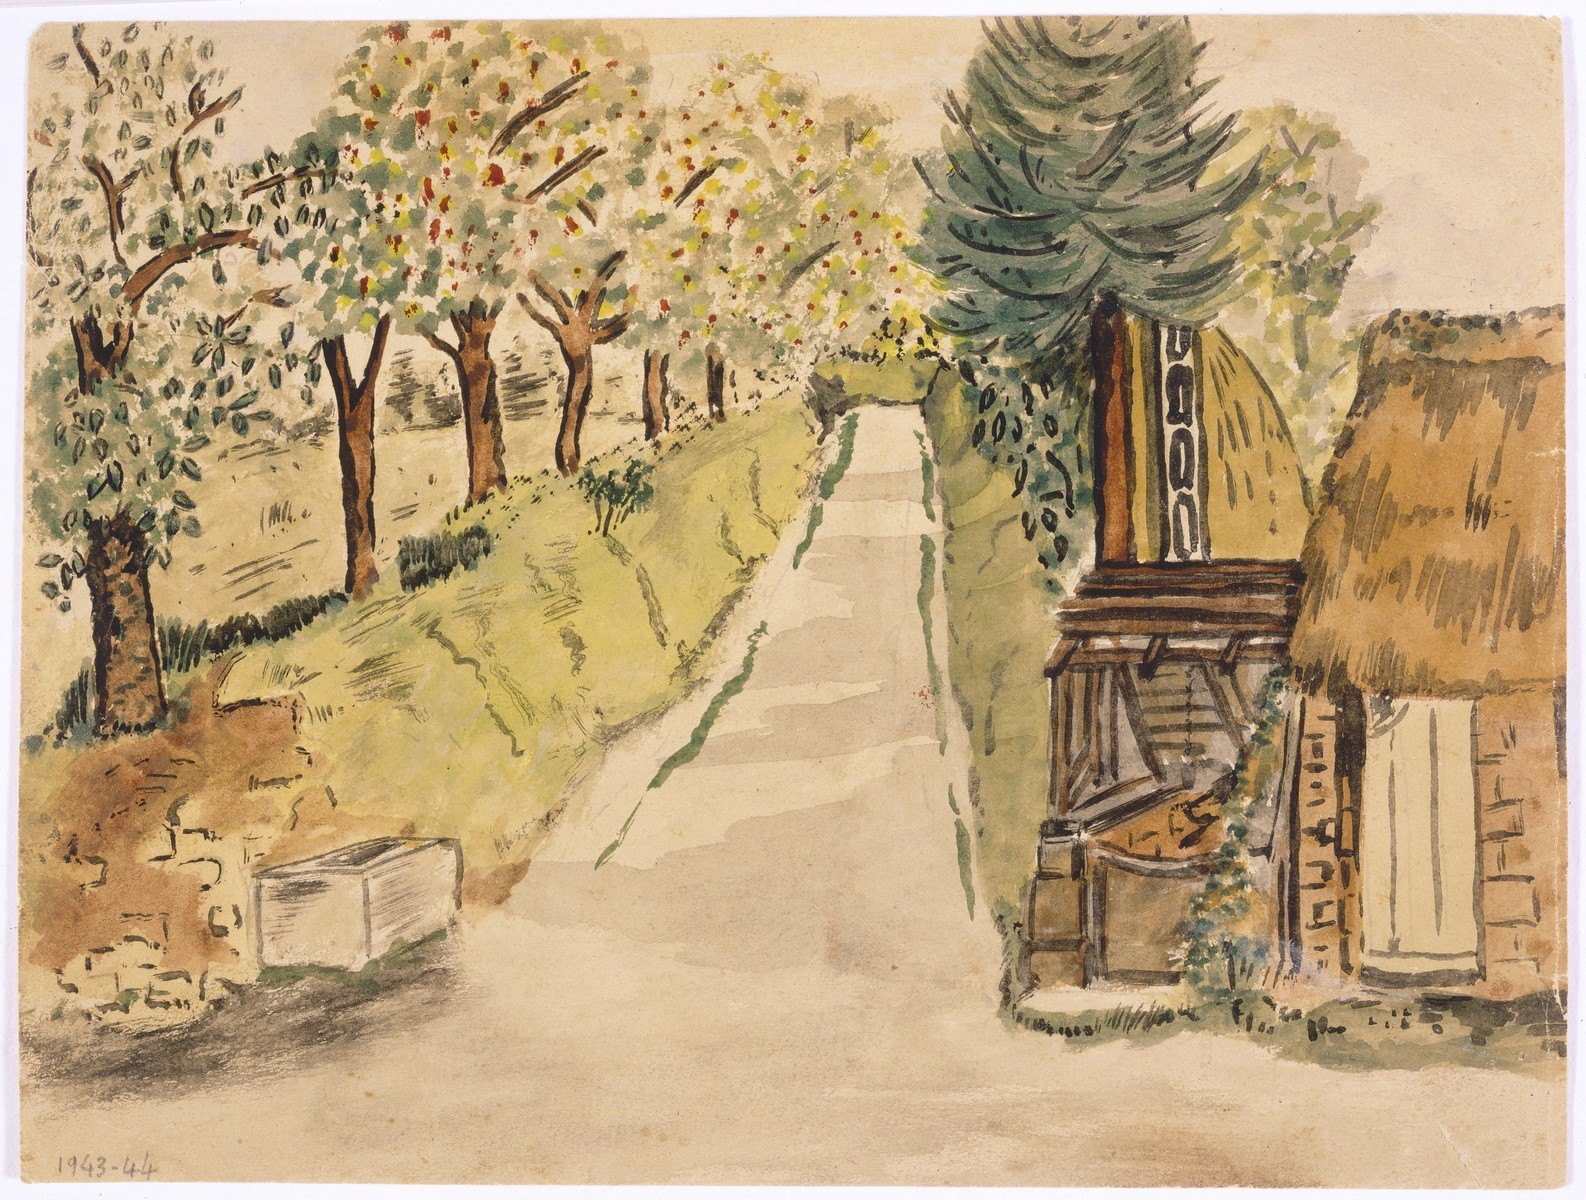 Watercolor painting by Simon Jeruchim.  The painting depicts a road in La Renouardiere, near the home of the artist's rescuer, Madame Prim.  The road led to the village.  An apple orchard is pictured on the left, and a well where they fetched water for their daily needs is seen on the right.